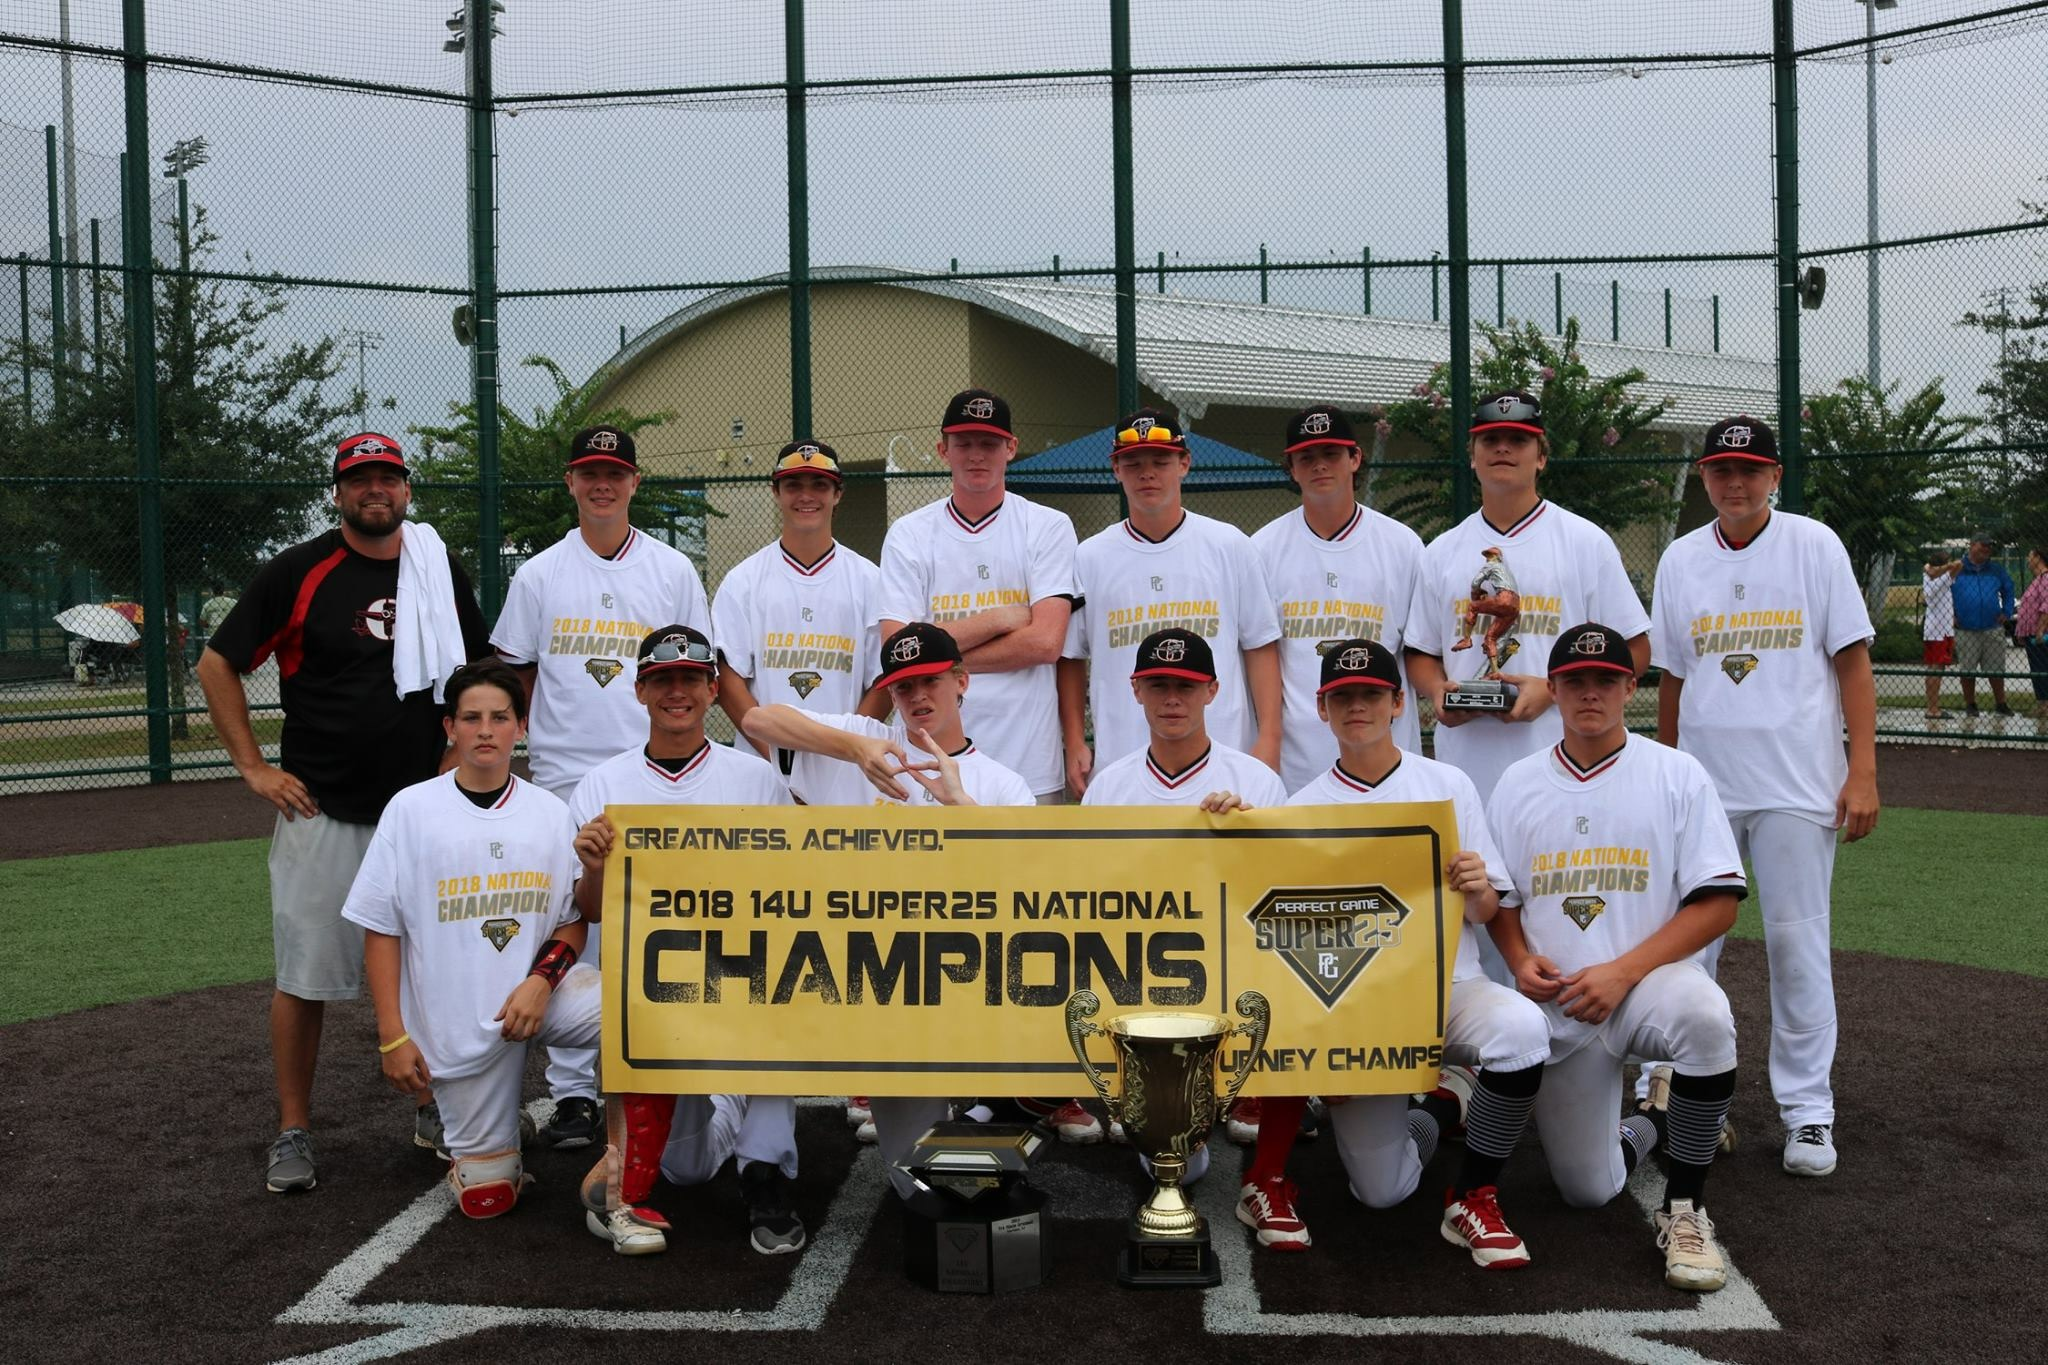 Bombers 14u Wins PG Super 25 National Championship